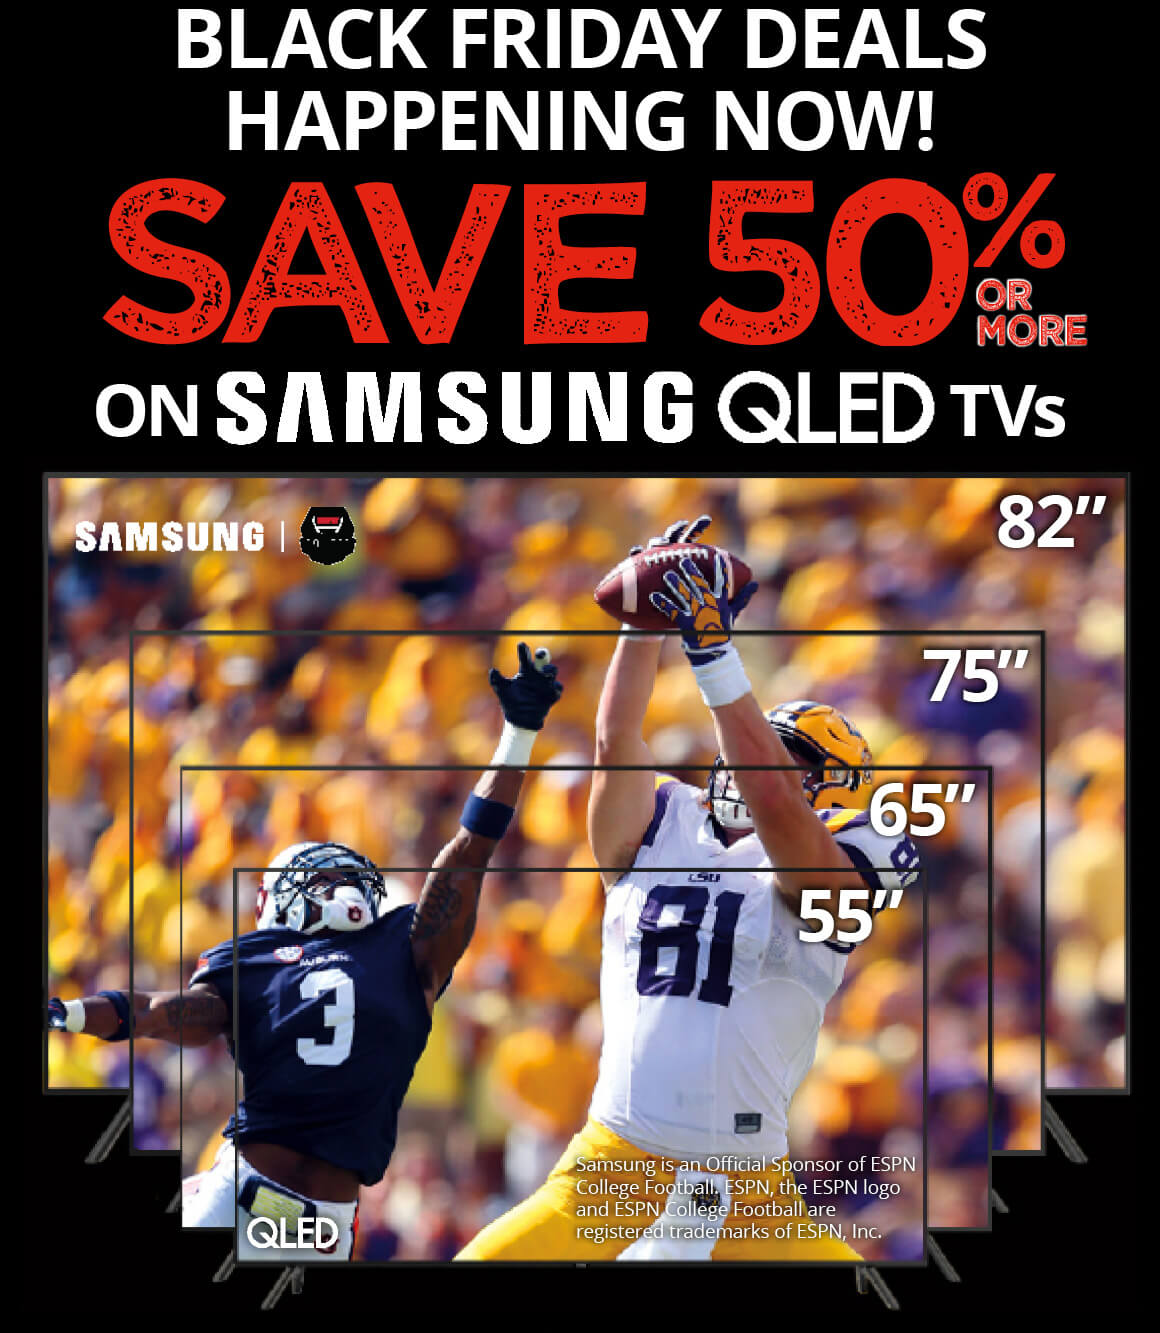 Save 50% or more on Samsung QLED TVs